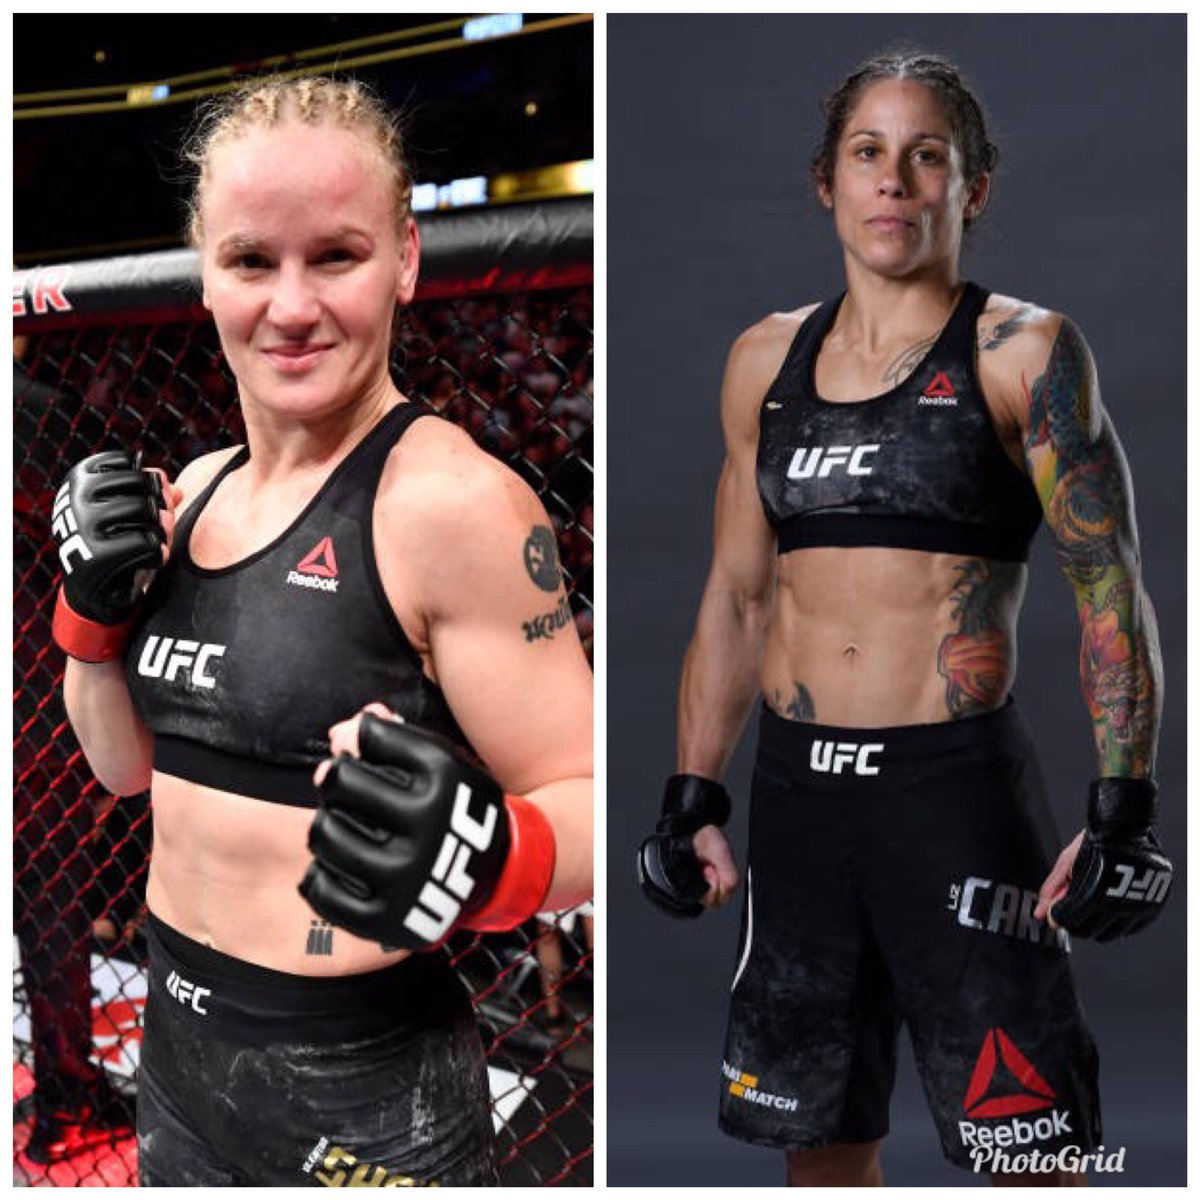 Breaking: Valentina Shevchenko vs. Liz Carmouche will headline UFC Fight Night on Aug. 10 in Uruguay, per multiple sources. Carmouche is only one of two women to ever defeat Shevchenko in MMA. It happened back in 2010, at a regional show outside Oklahoma.